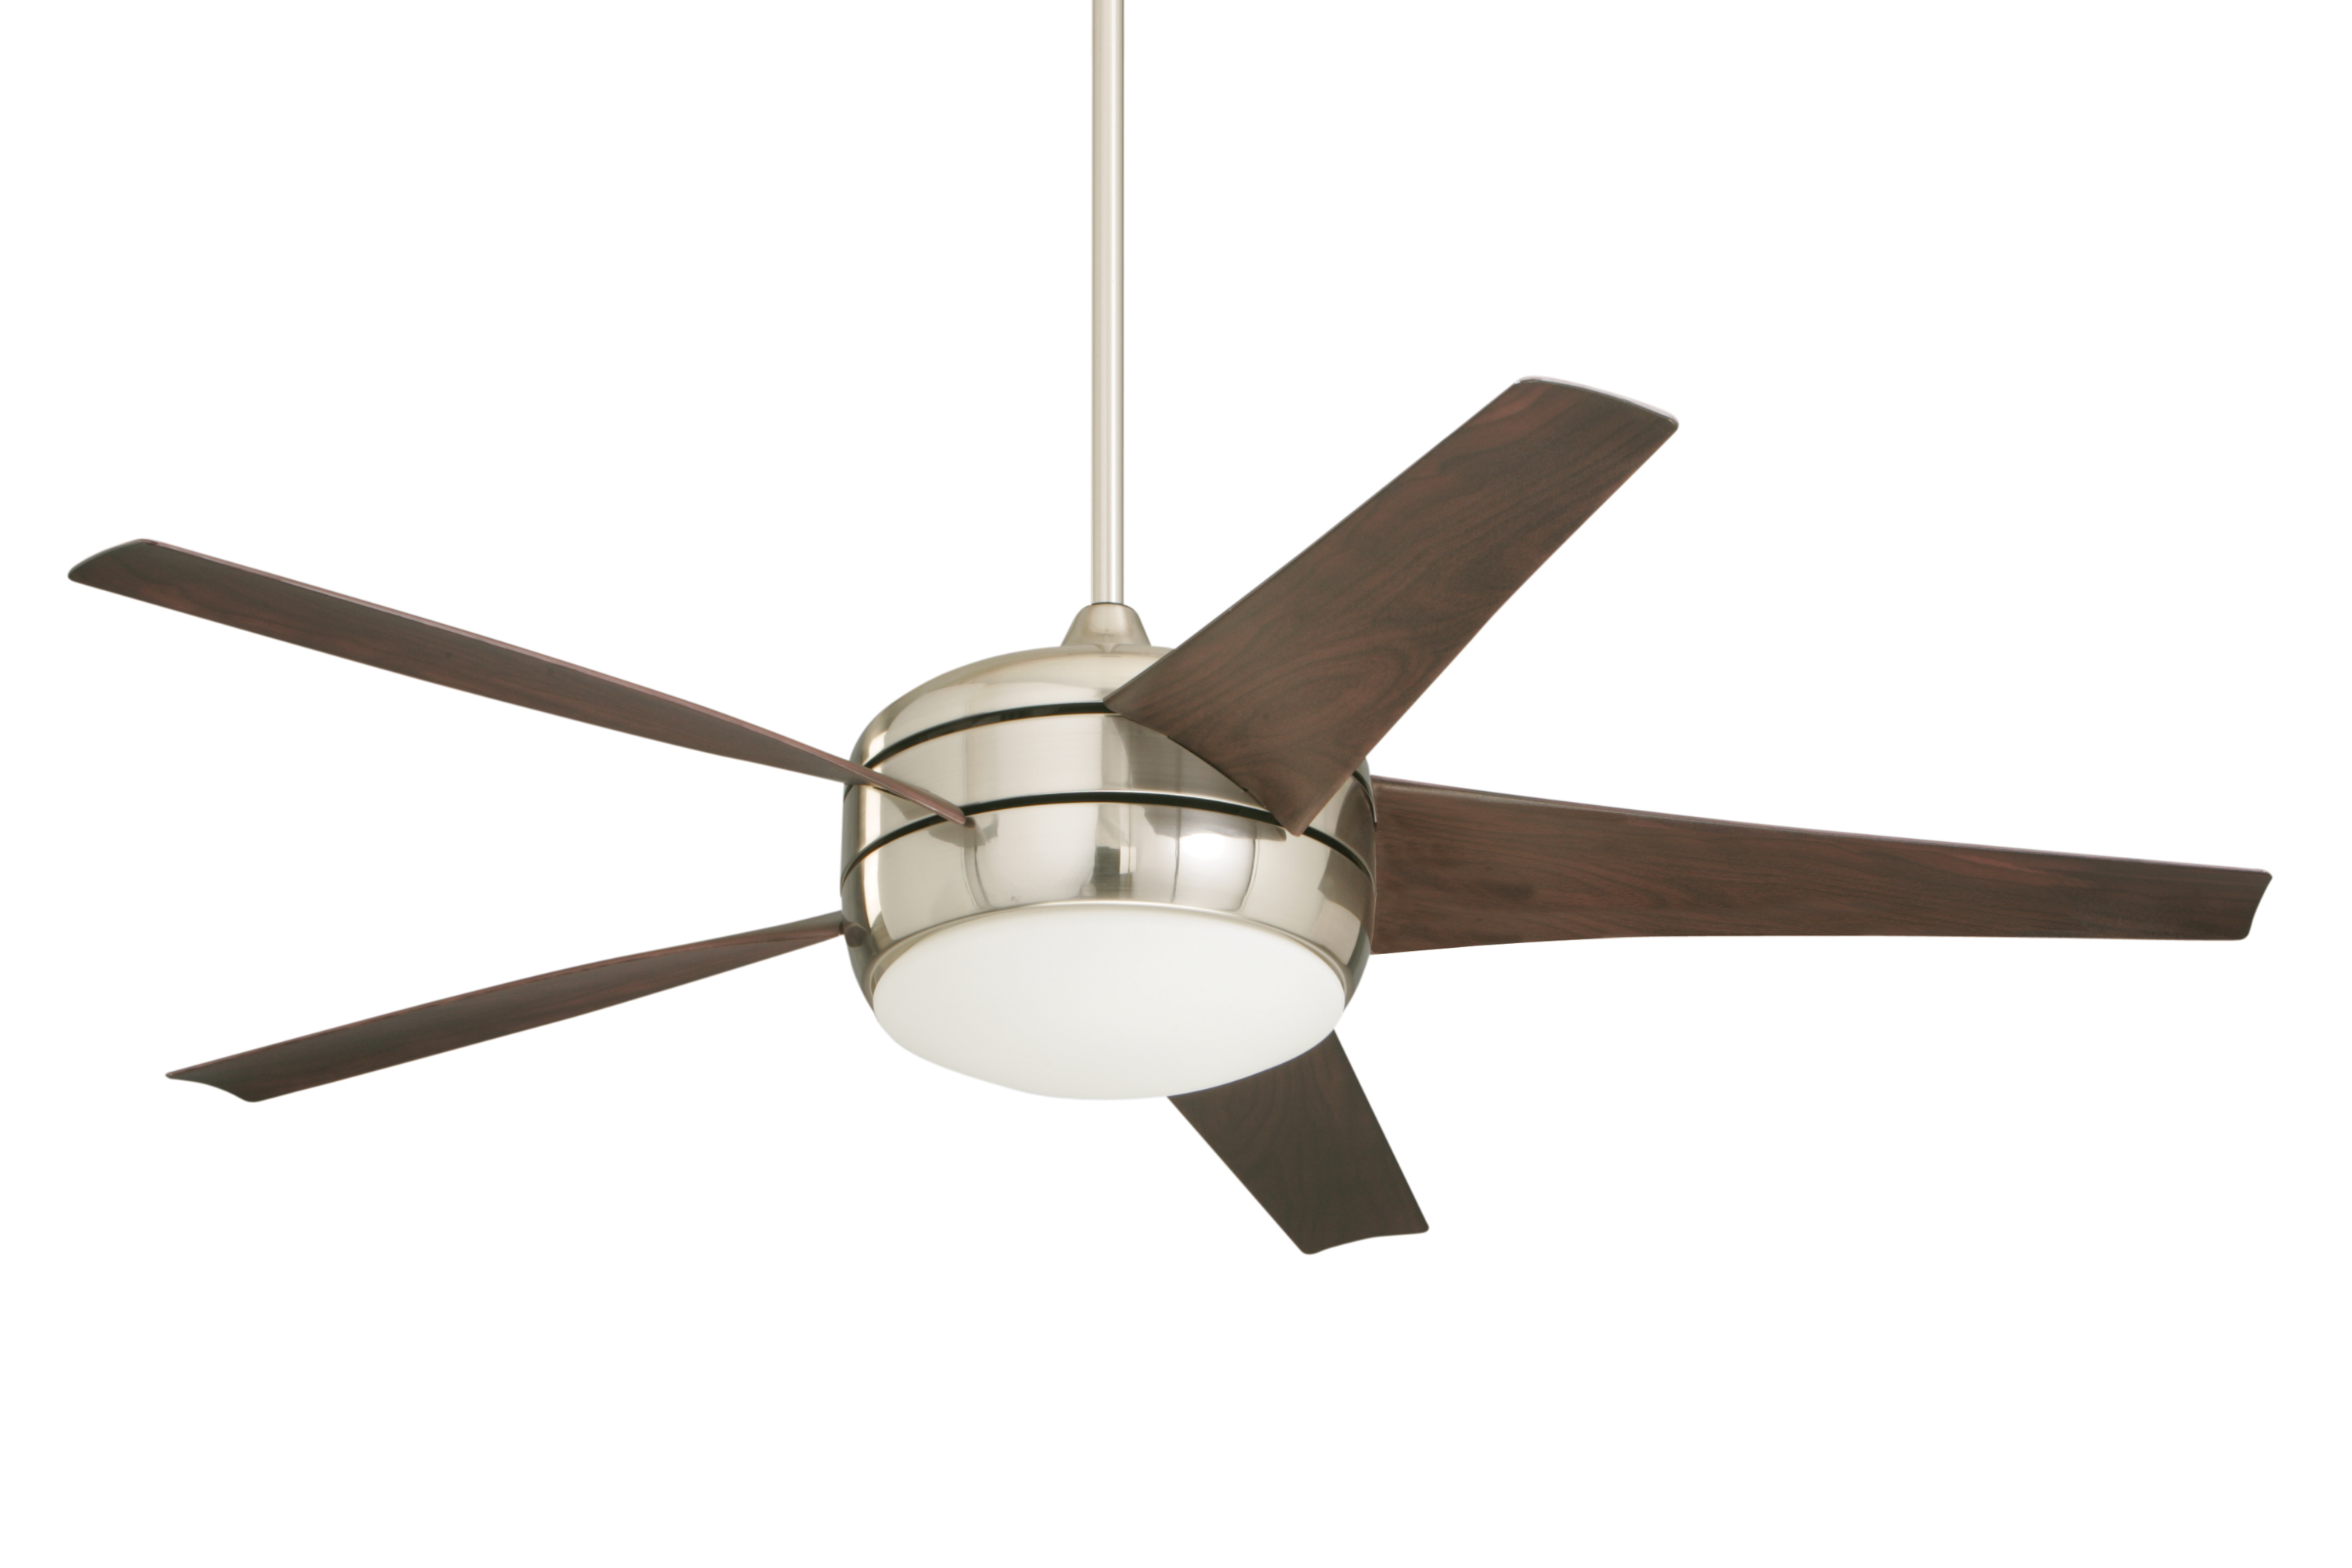 Contemporary ceiling fans with light homesfeed for White contemporary ceiling fans with lights